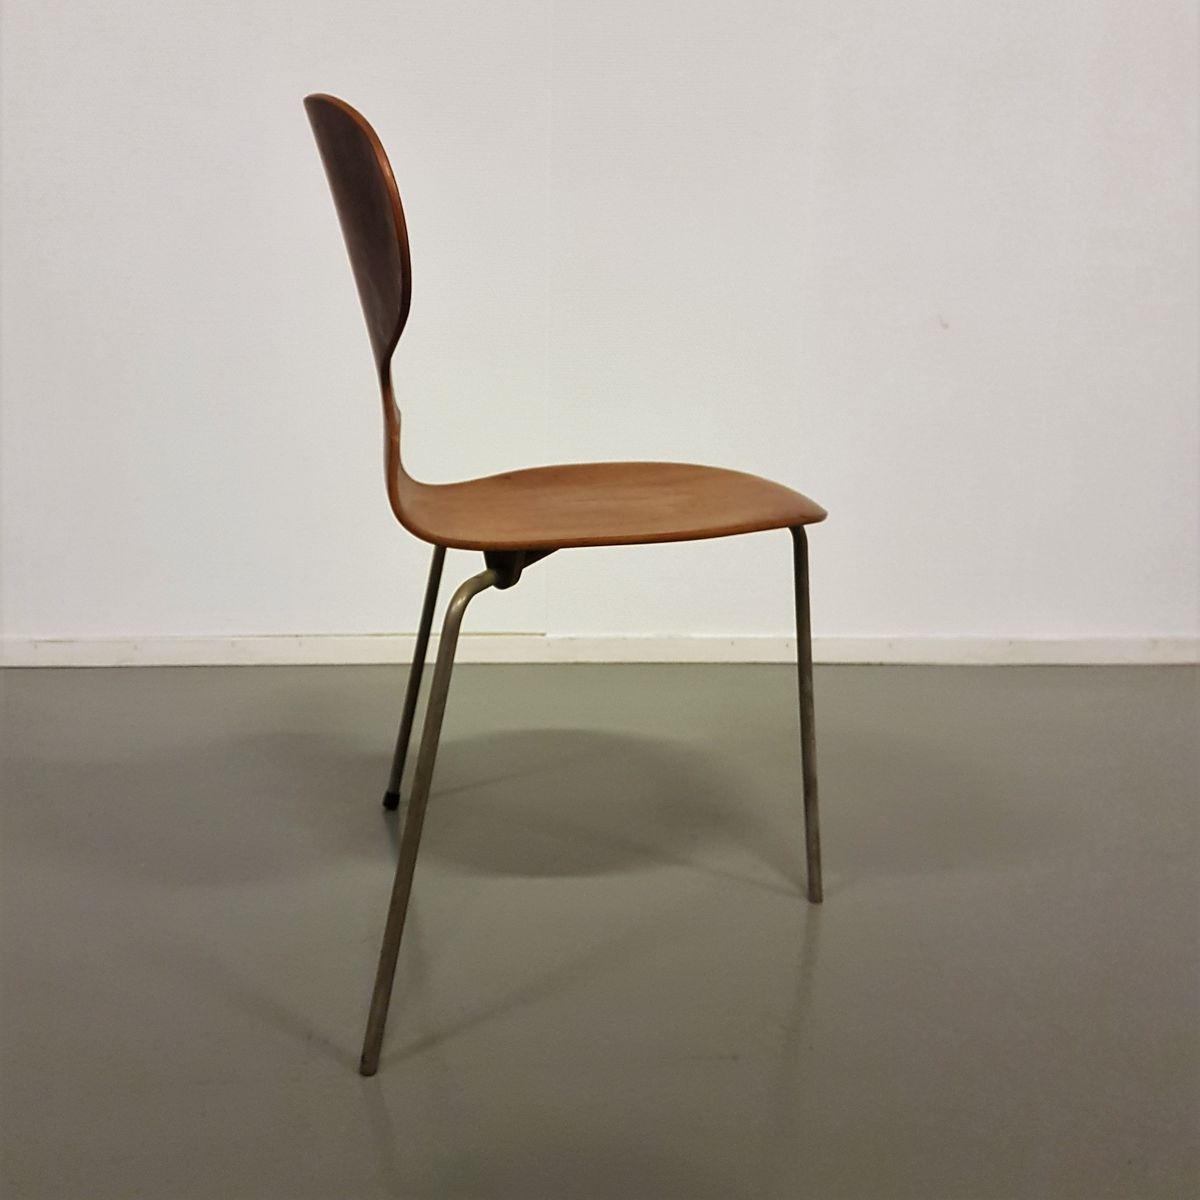 model 3100 ant chair by arne jacobsen for fritz hansen 1950s for sale at pamono. Black Bedroom Furniture Sets. Home Design Ideas